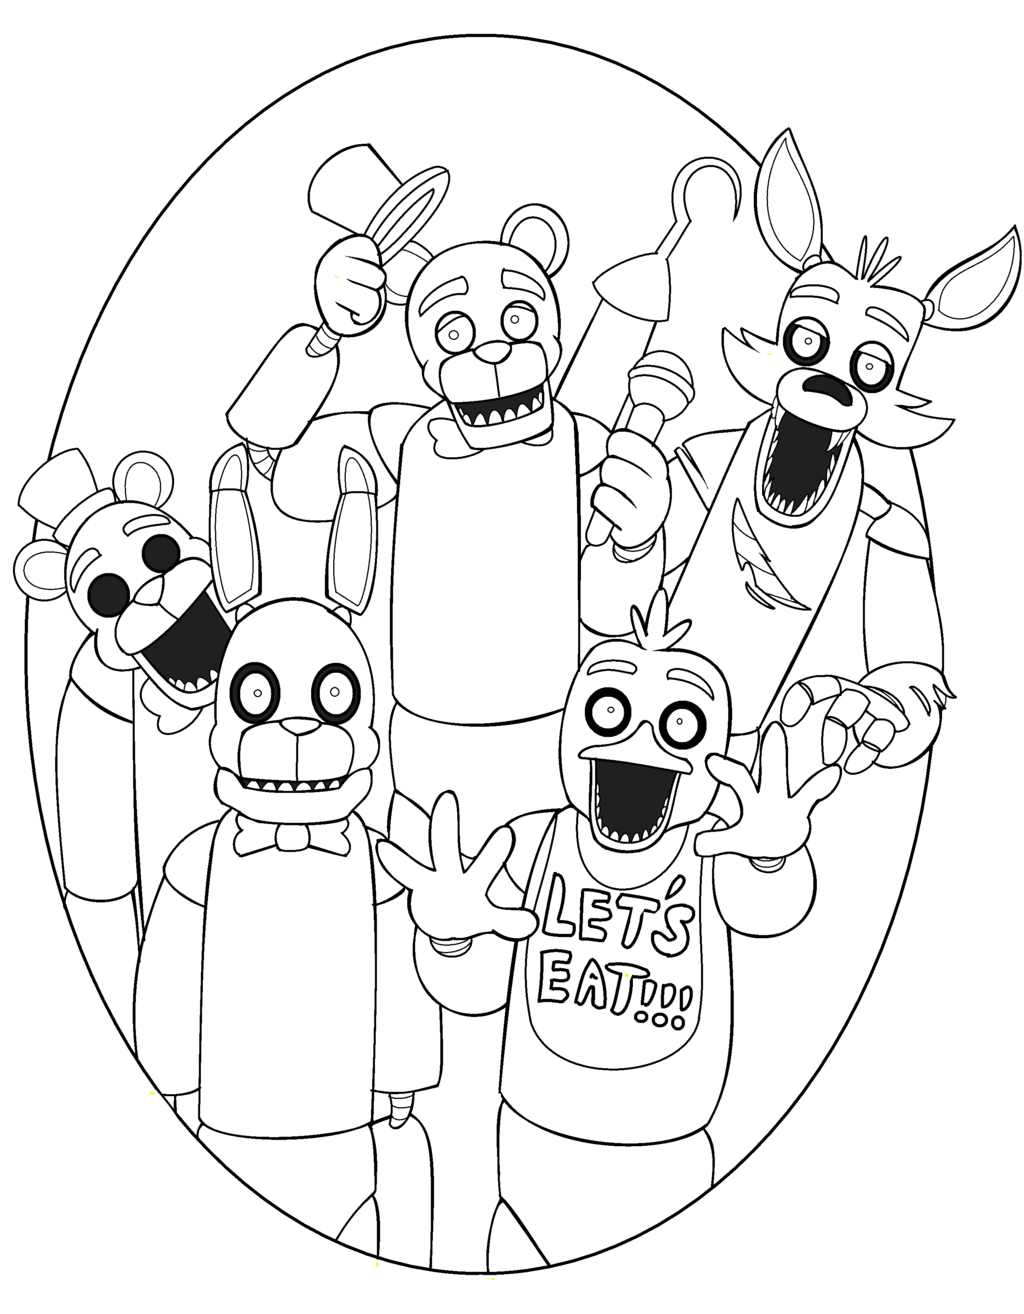 photo regarding Five Nights at Freddy's Printable Coloring Pages identify 5 evenings at freddys colouring - Google zoeken Coloring